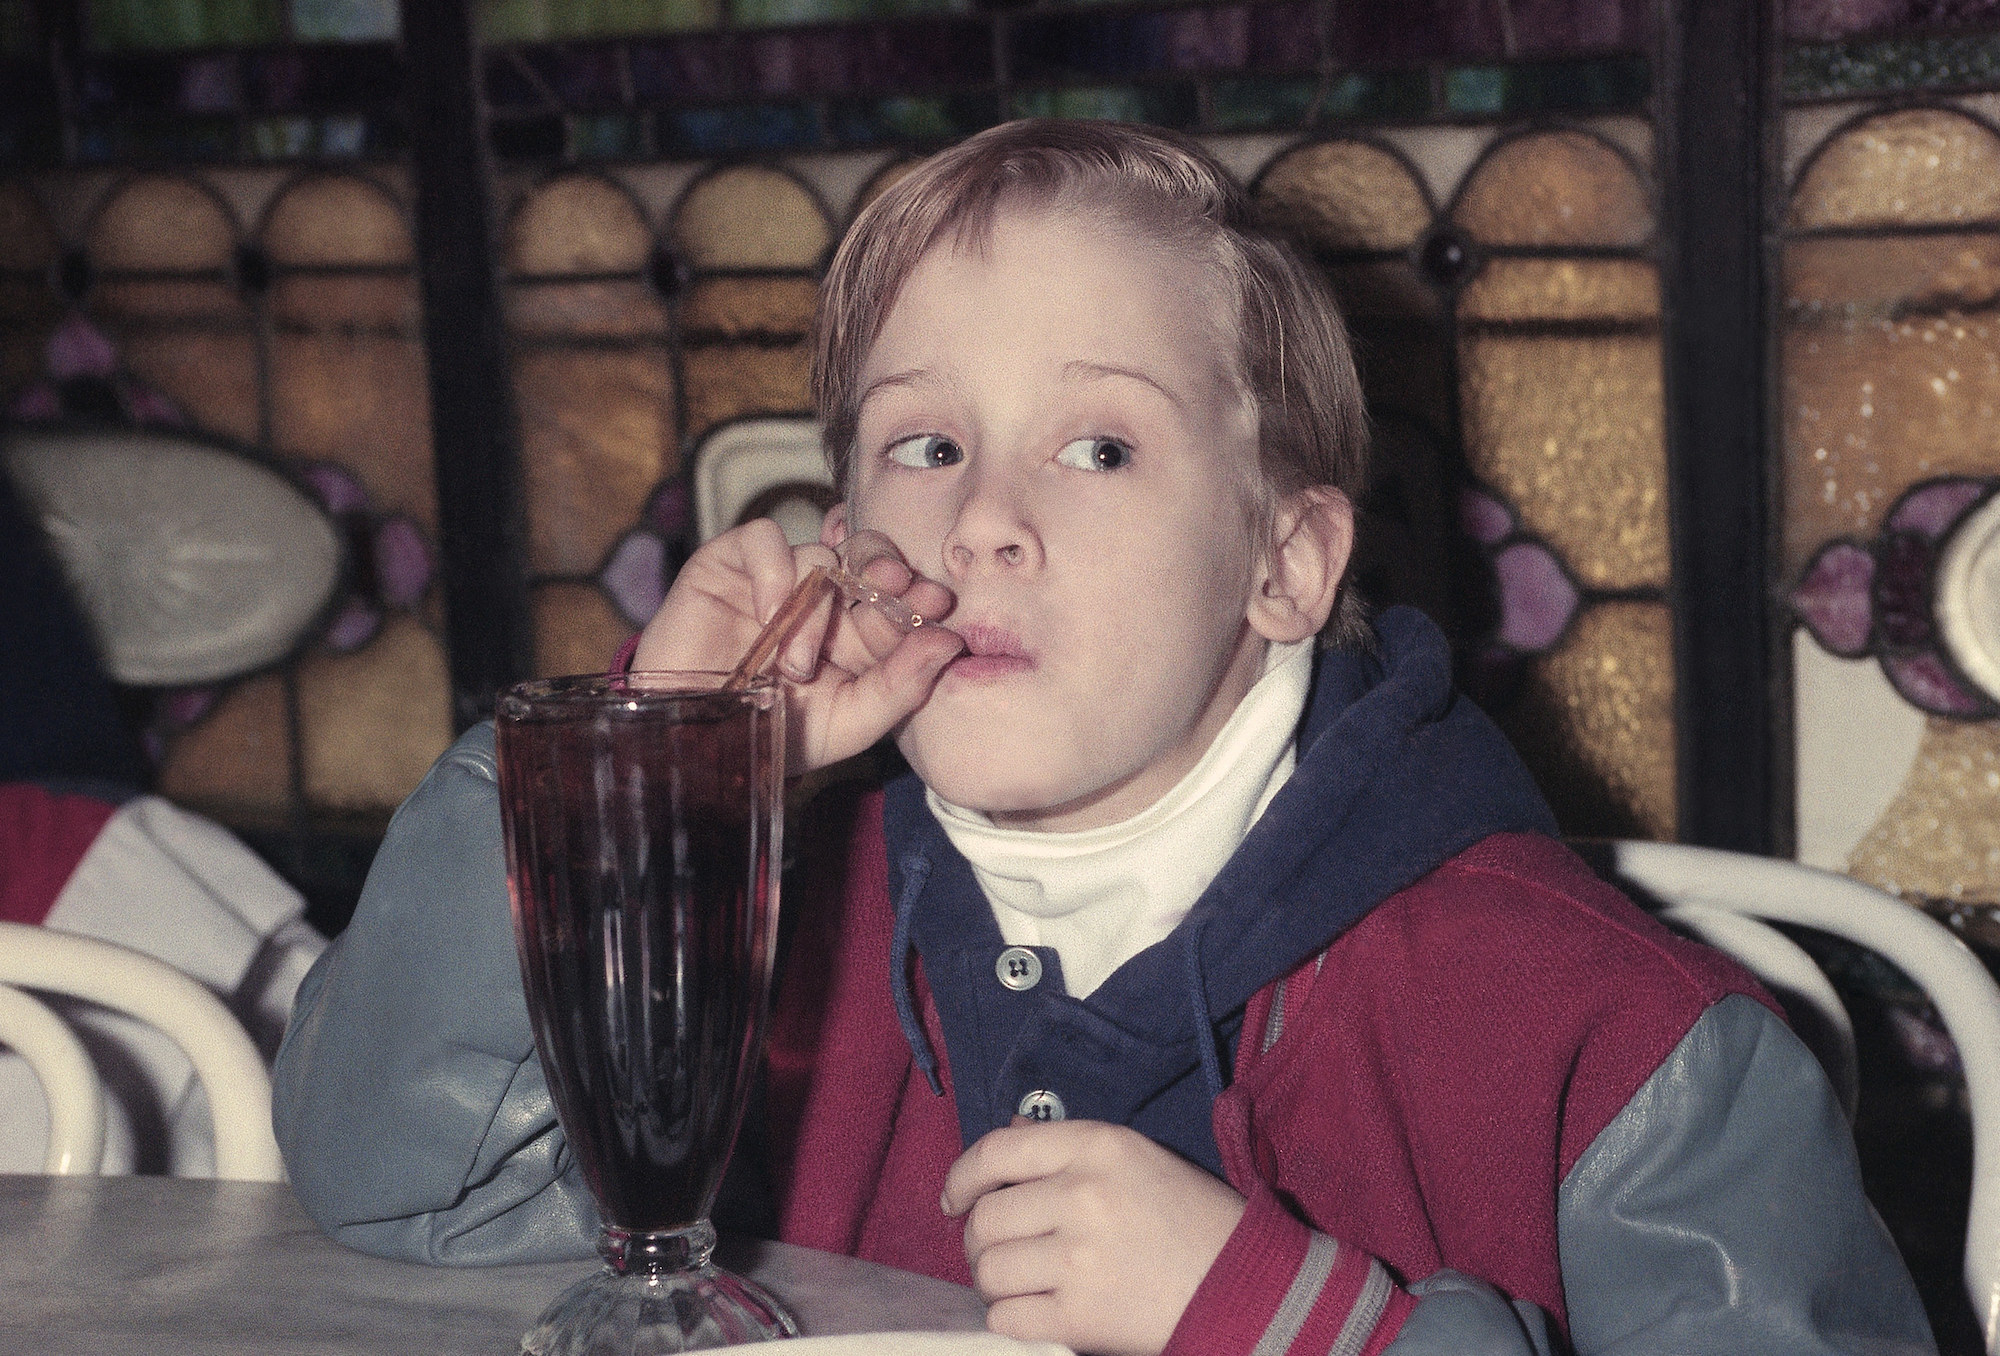 Macaulay drinking a soda as a kid